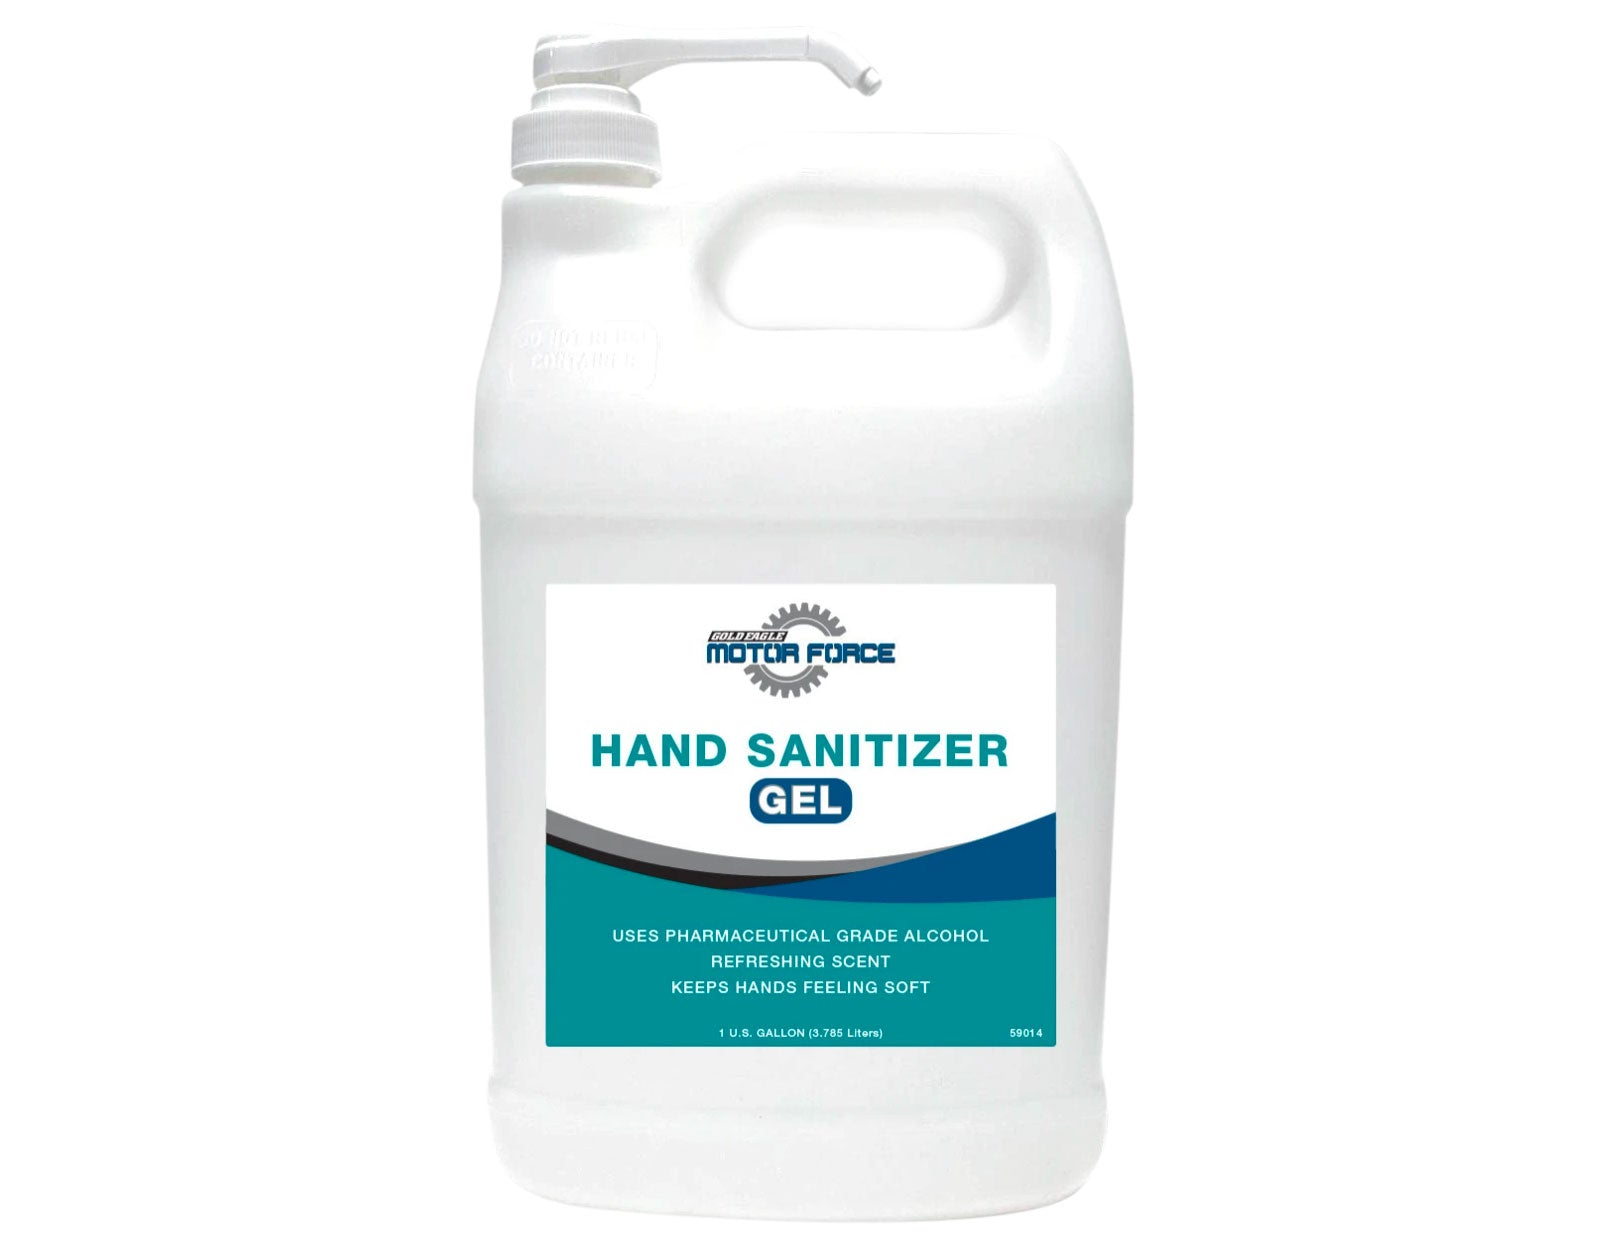 One case of 4 -1 Gallon containers Fresh Scent Hand Sanitizer